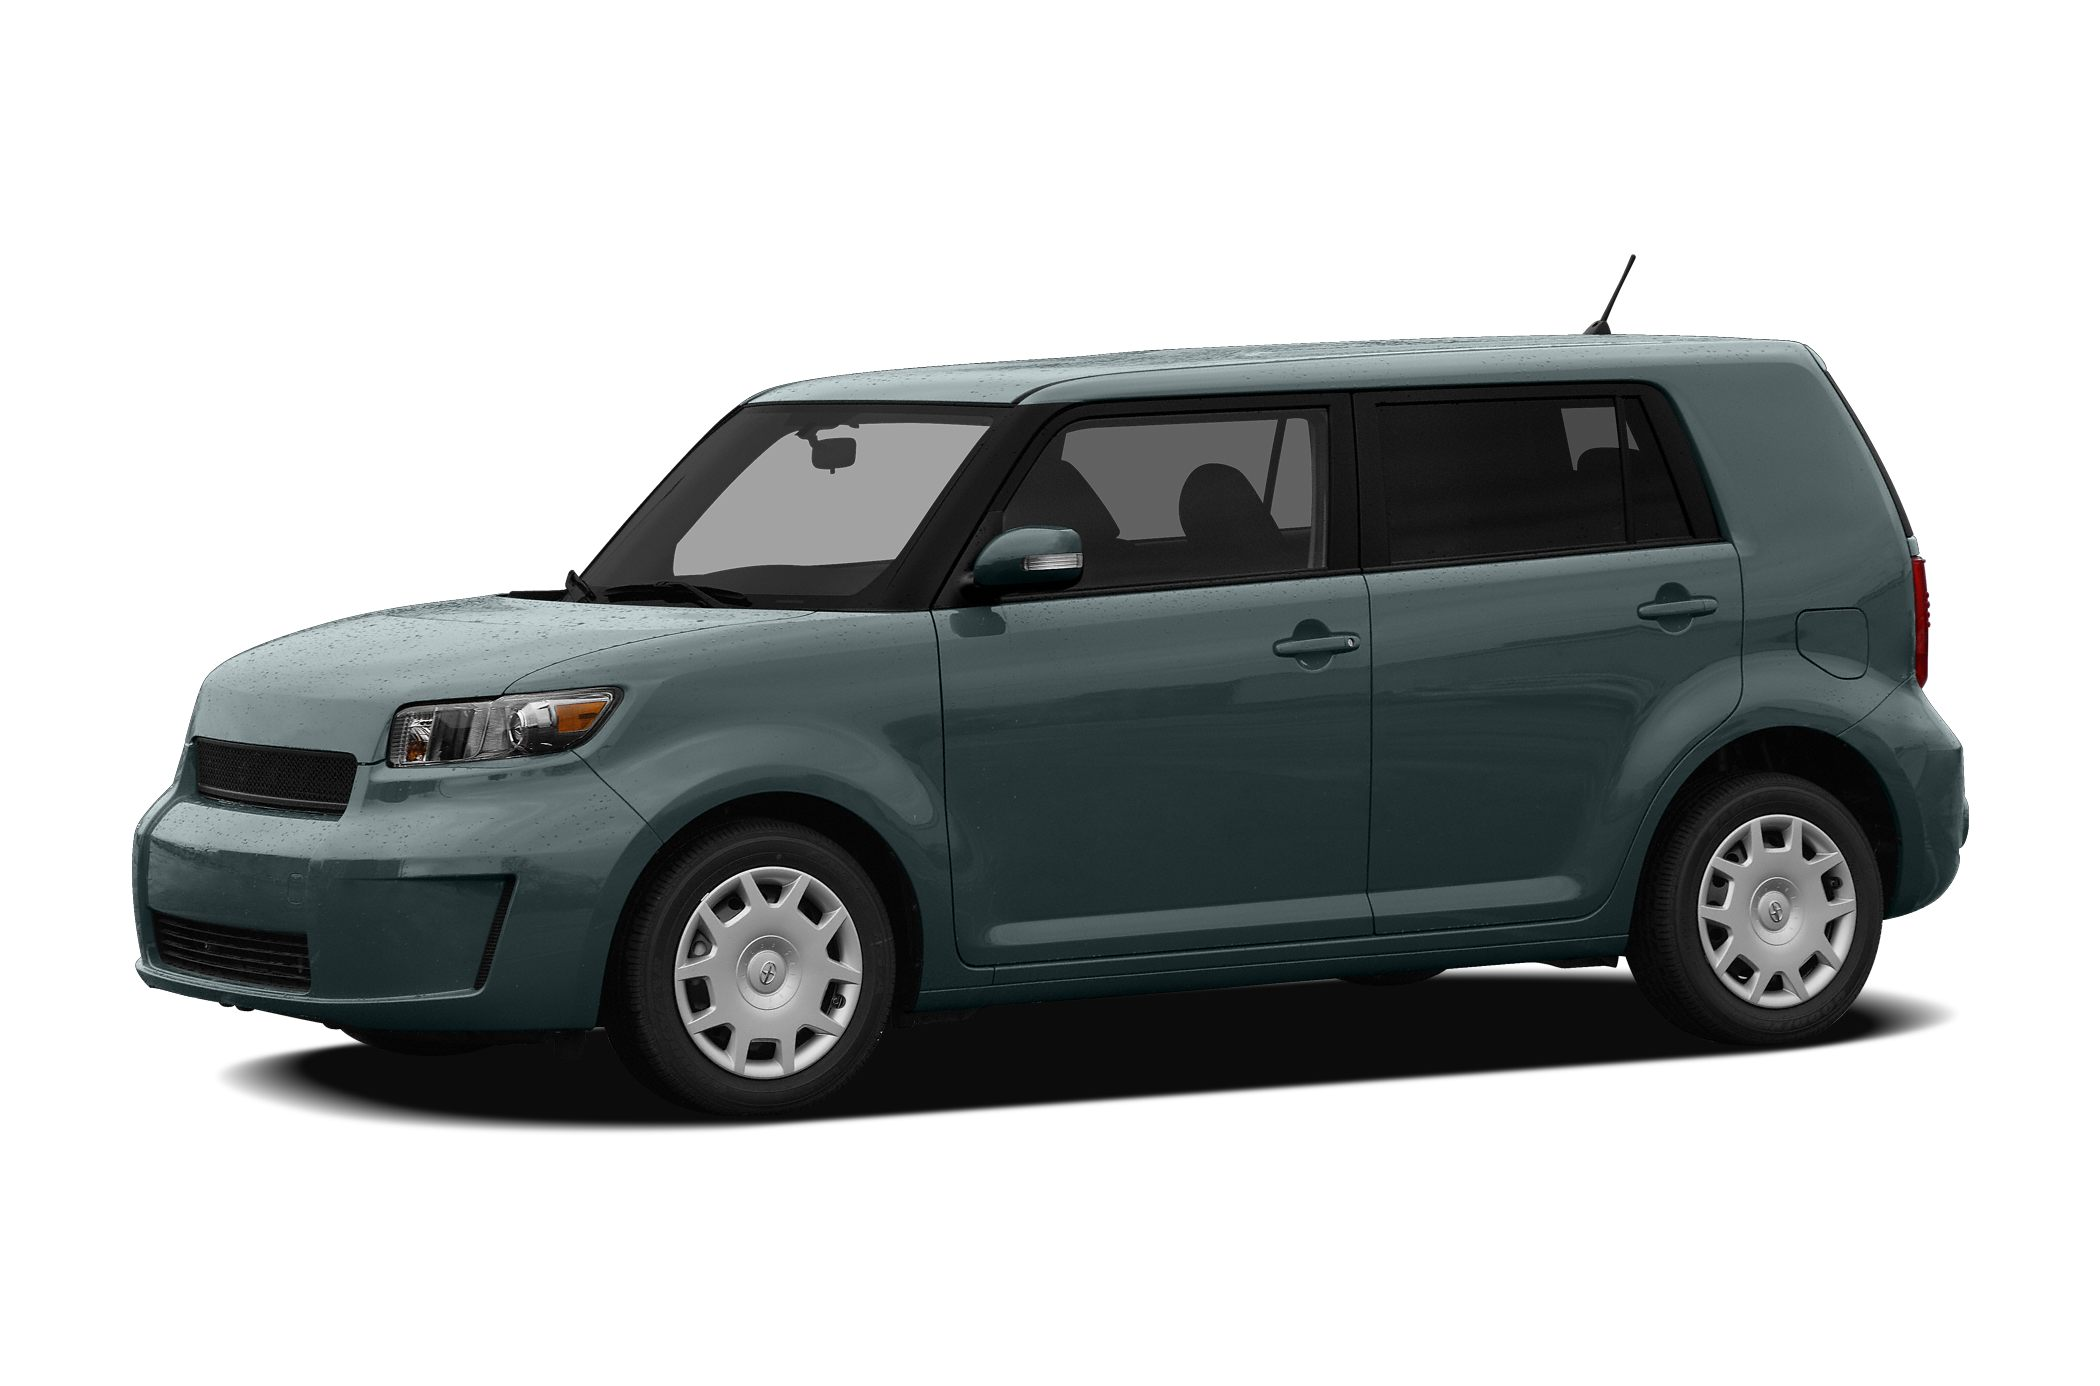 2010 Scion XB Wagon for sale in Las Vegas for $11,999 with 43,076 miles